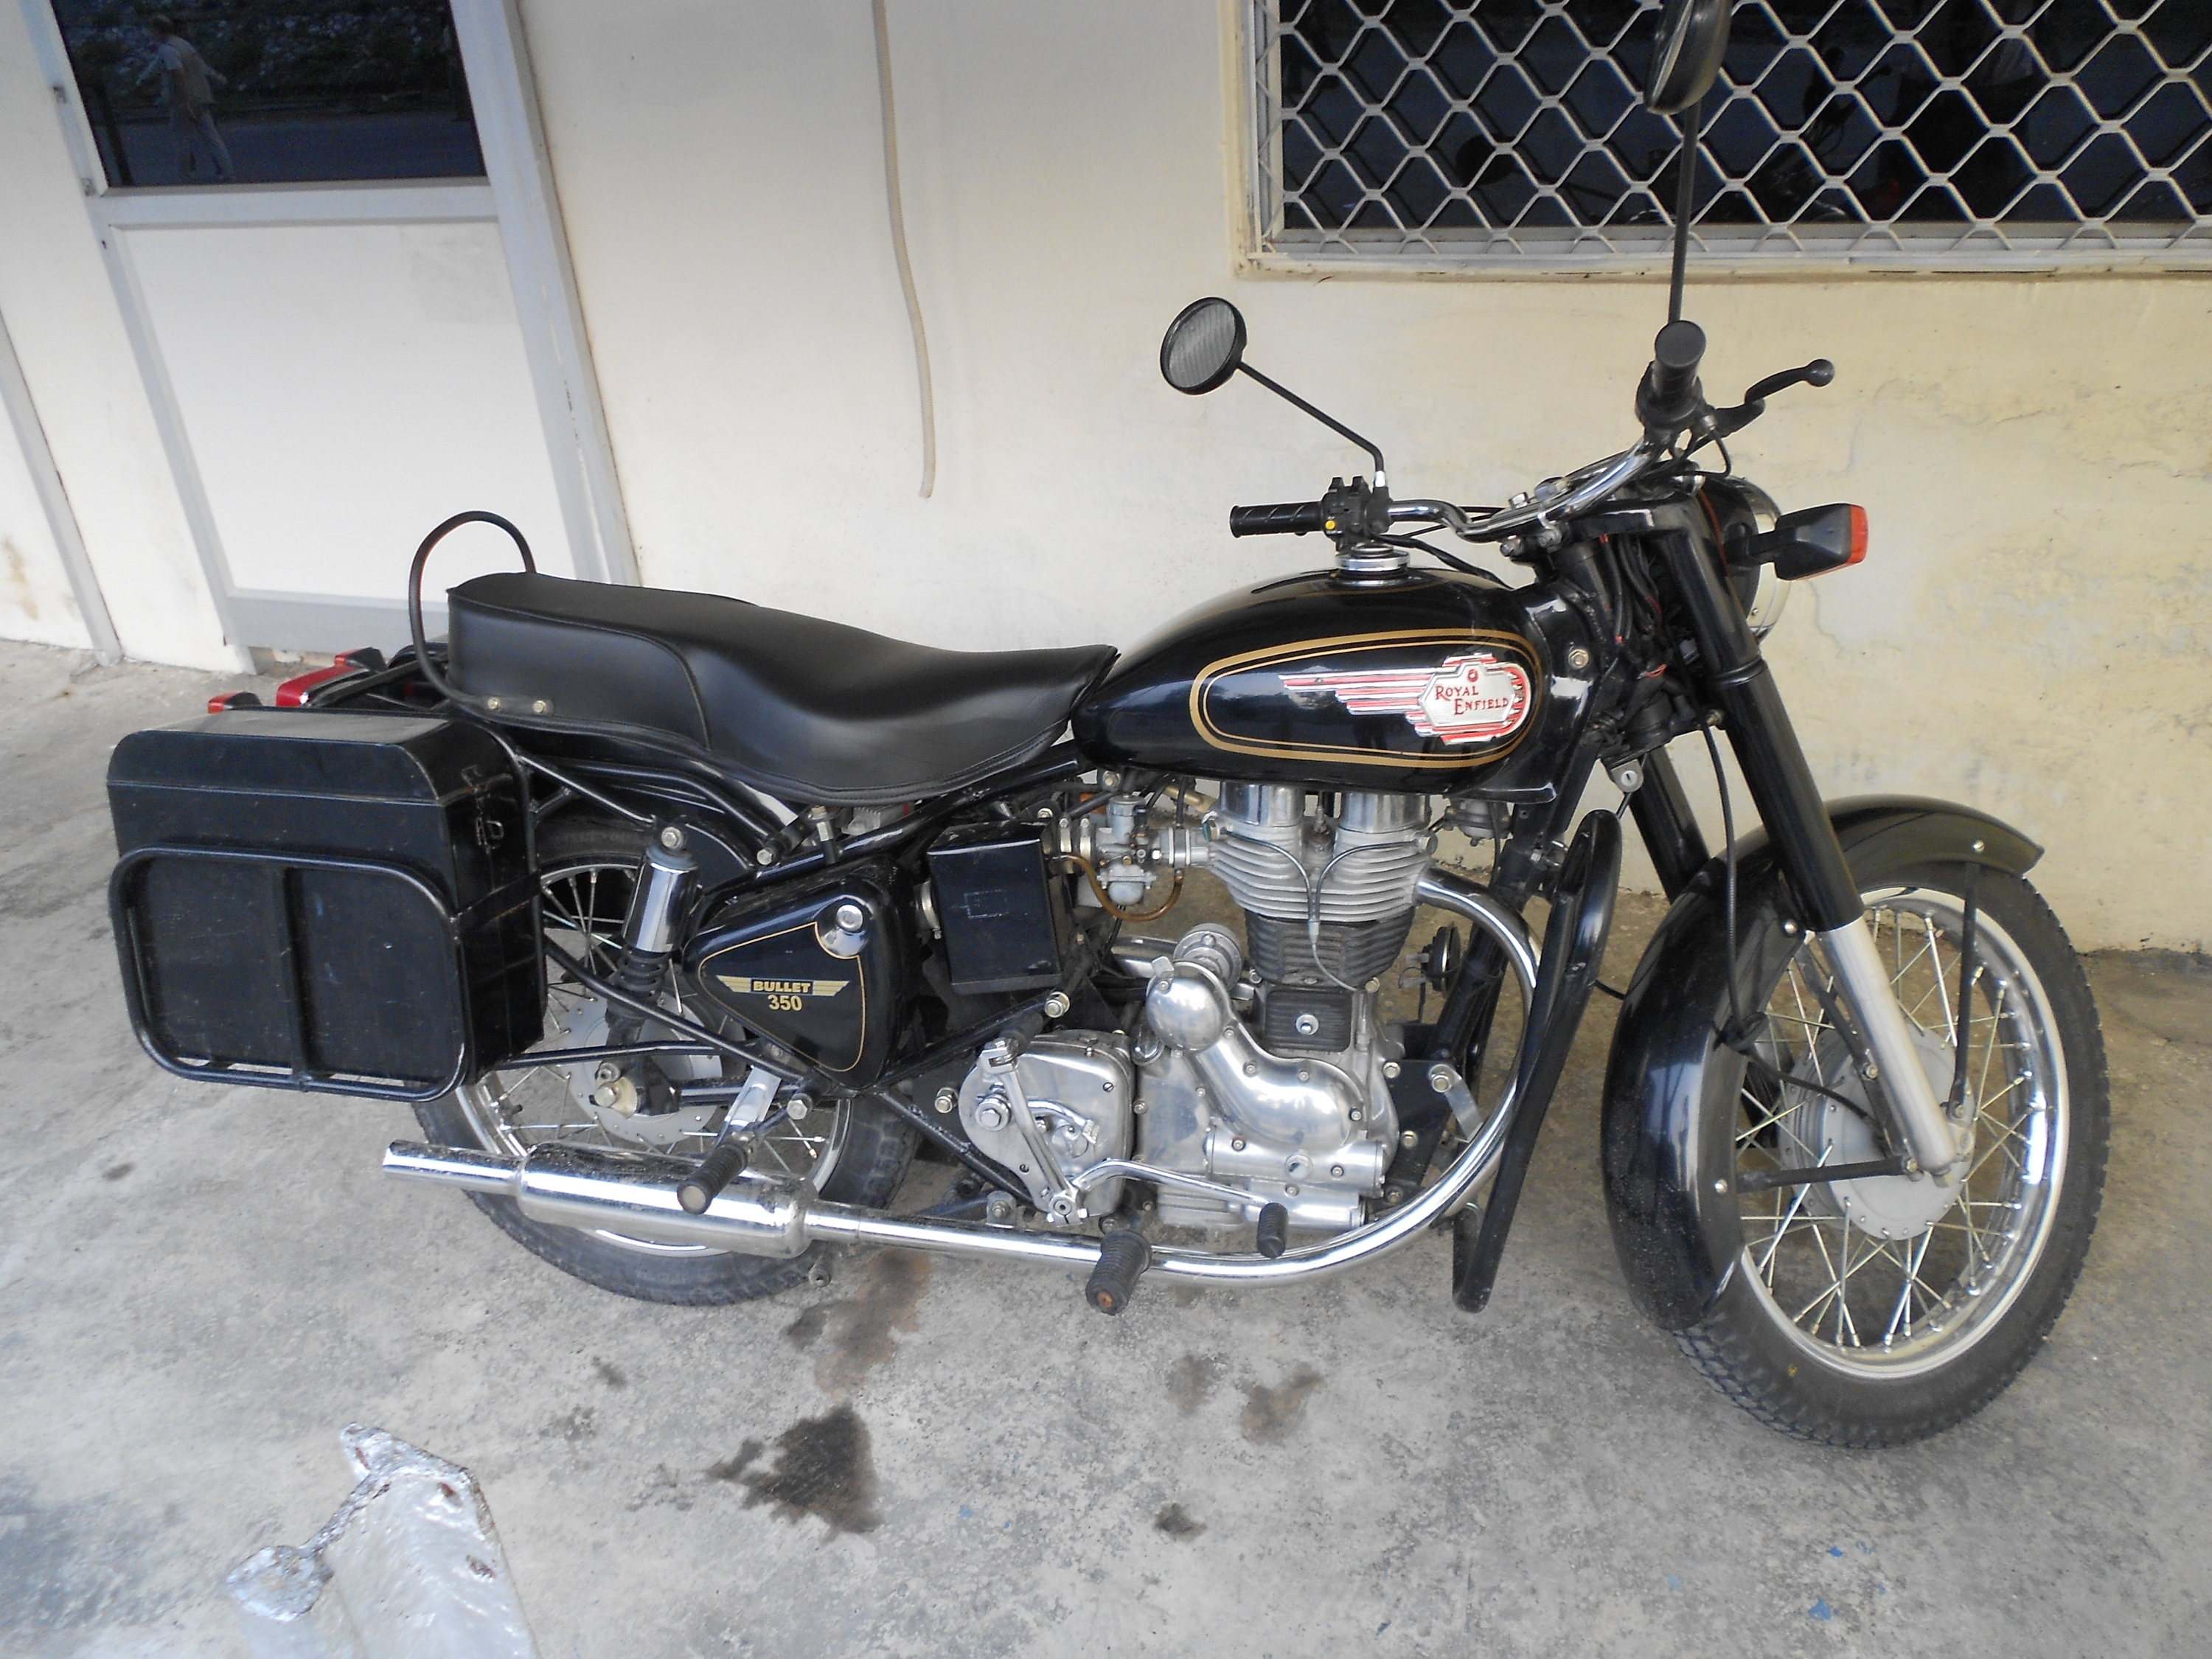 Royal Enfield Bullet 500 Classic images #127684